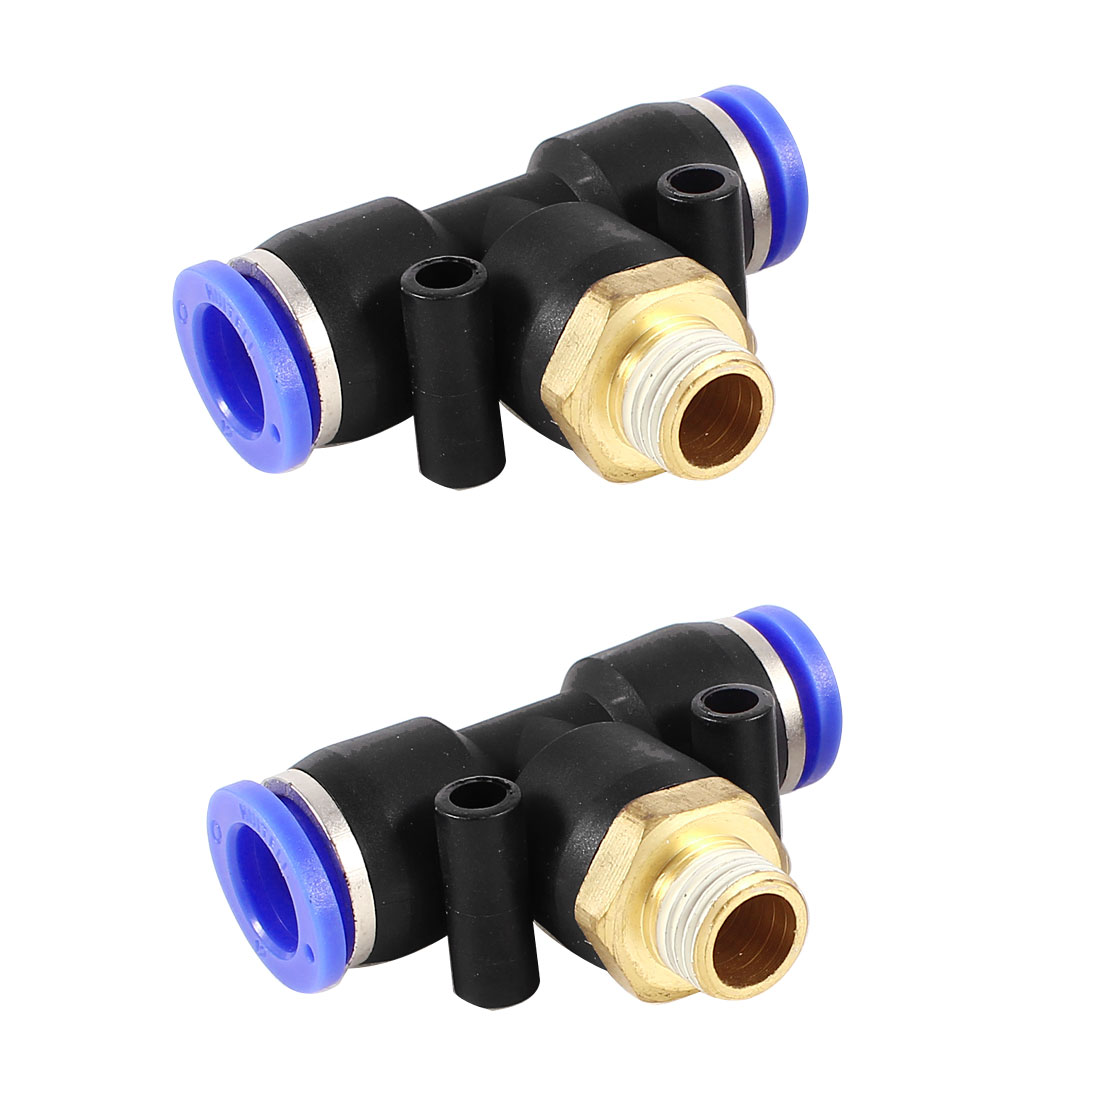 2pcs Air Pneumatic 12mm to 12mm 1/4PT Male Thread T Shape One Touch Quick Fitting Coupler